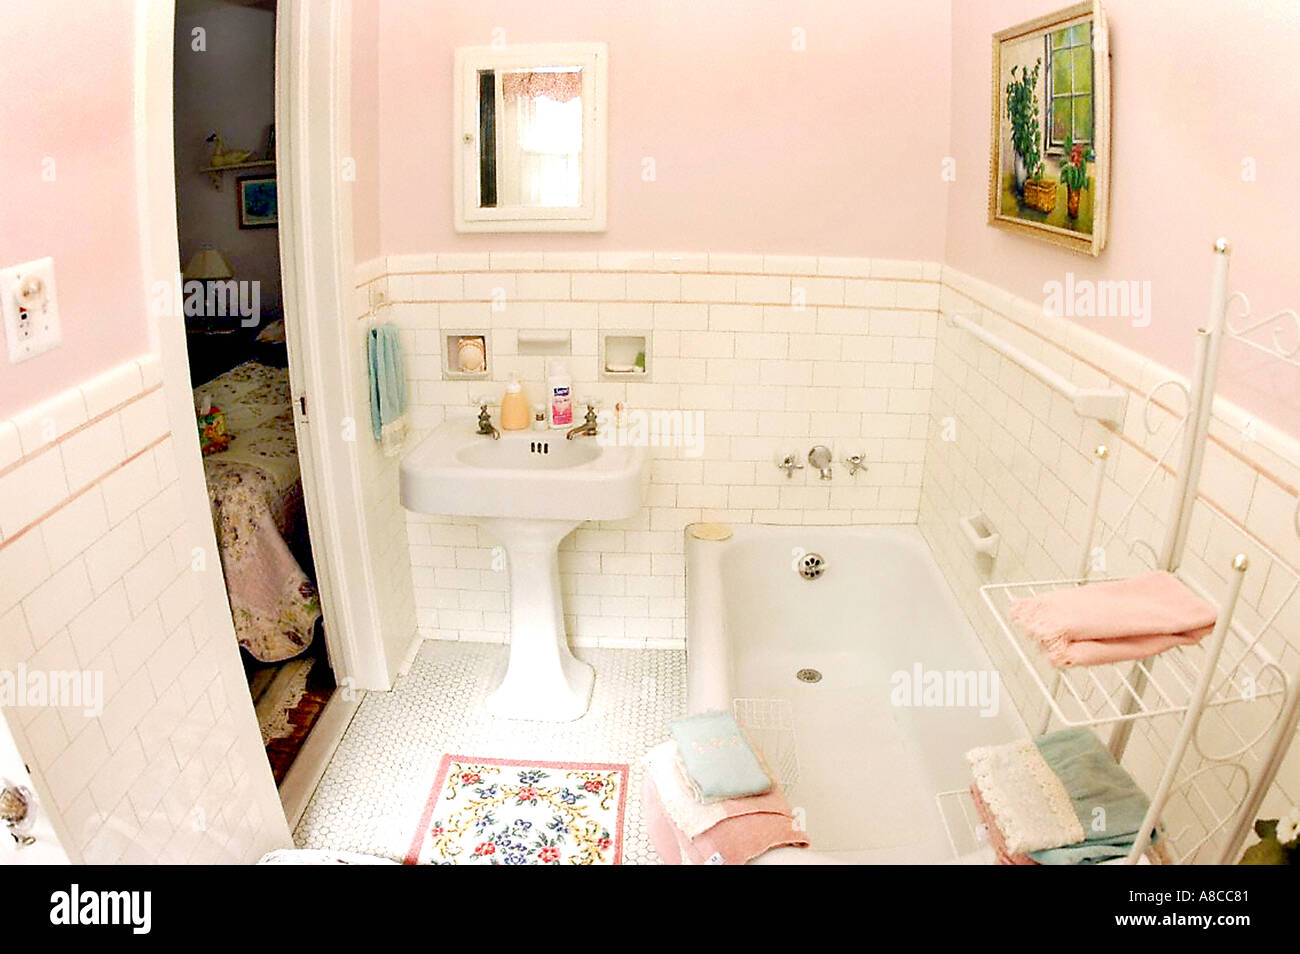 Usa American Bathtub Stock Photos & Usa American Bathtub Stock ...